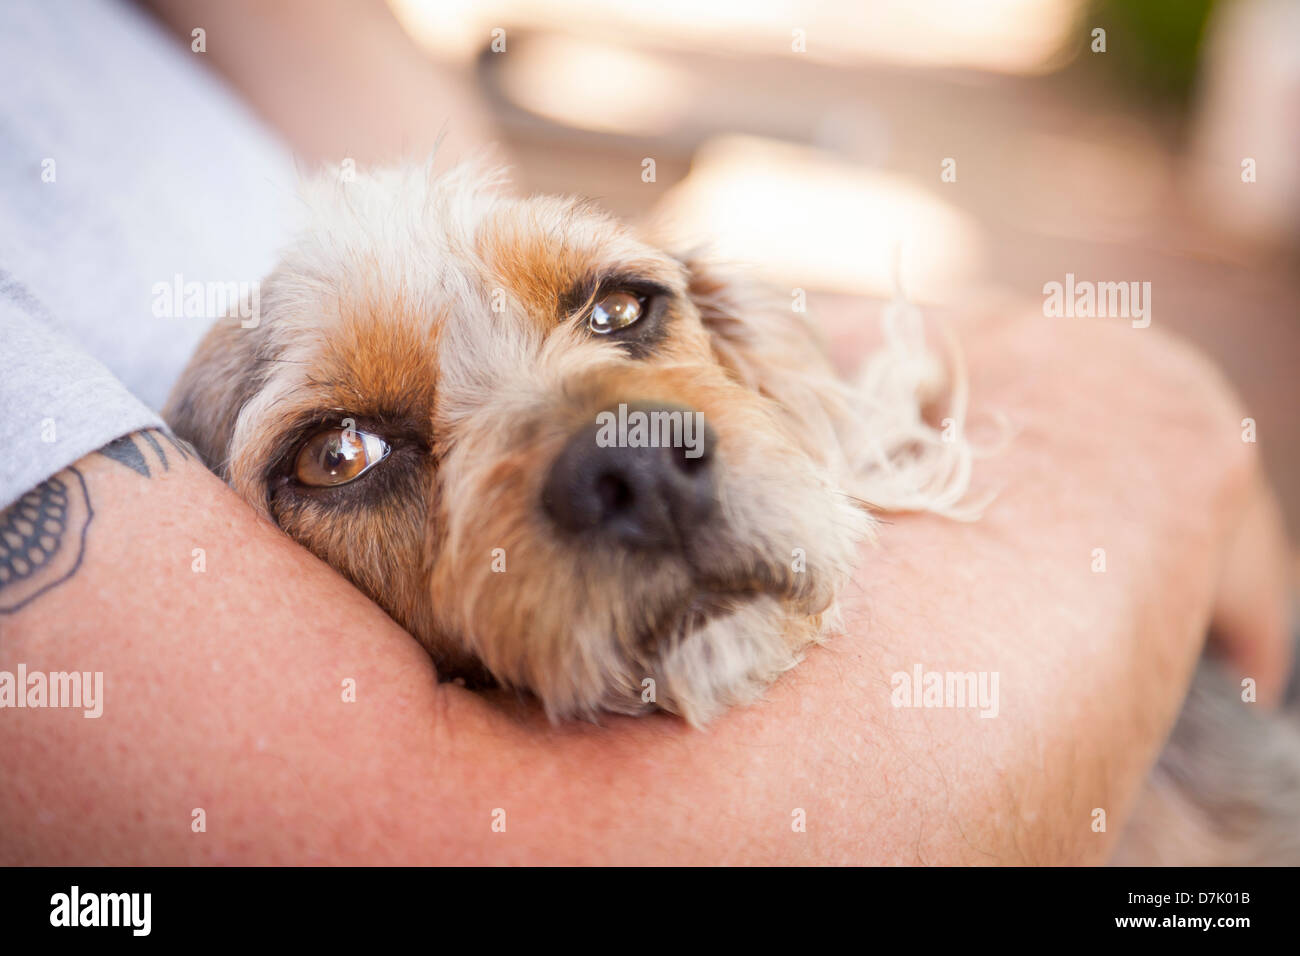 Cute Terrier Puppy Look On As Master Holds Her in His Lap. - Stock Image